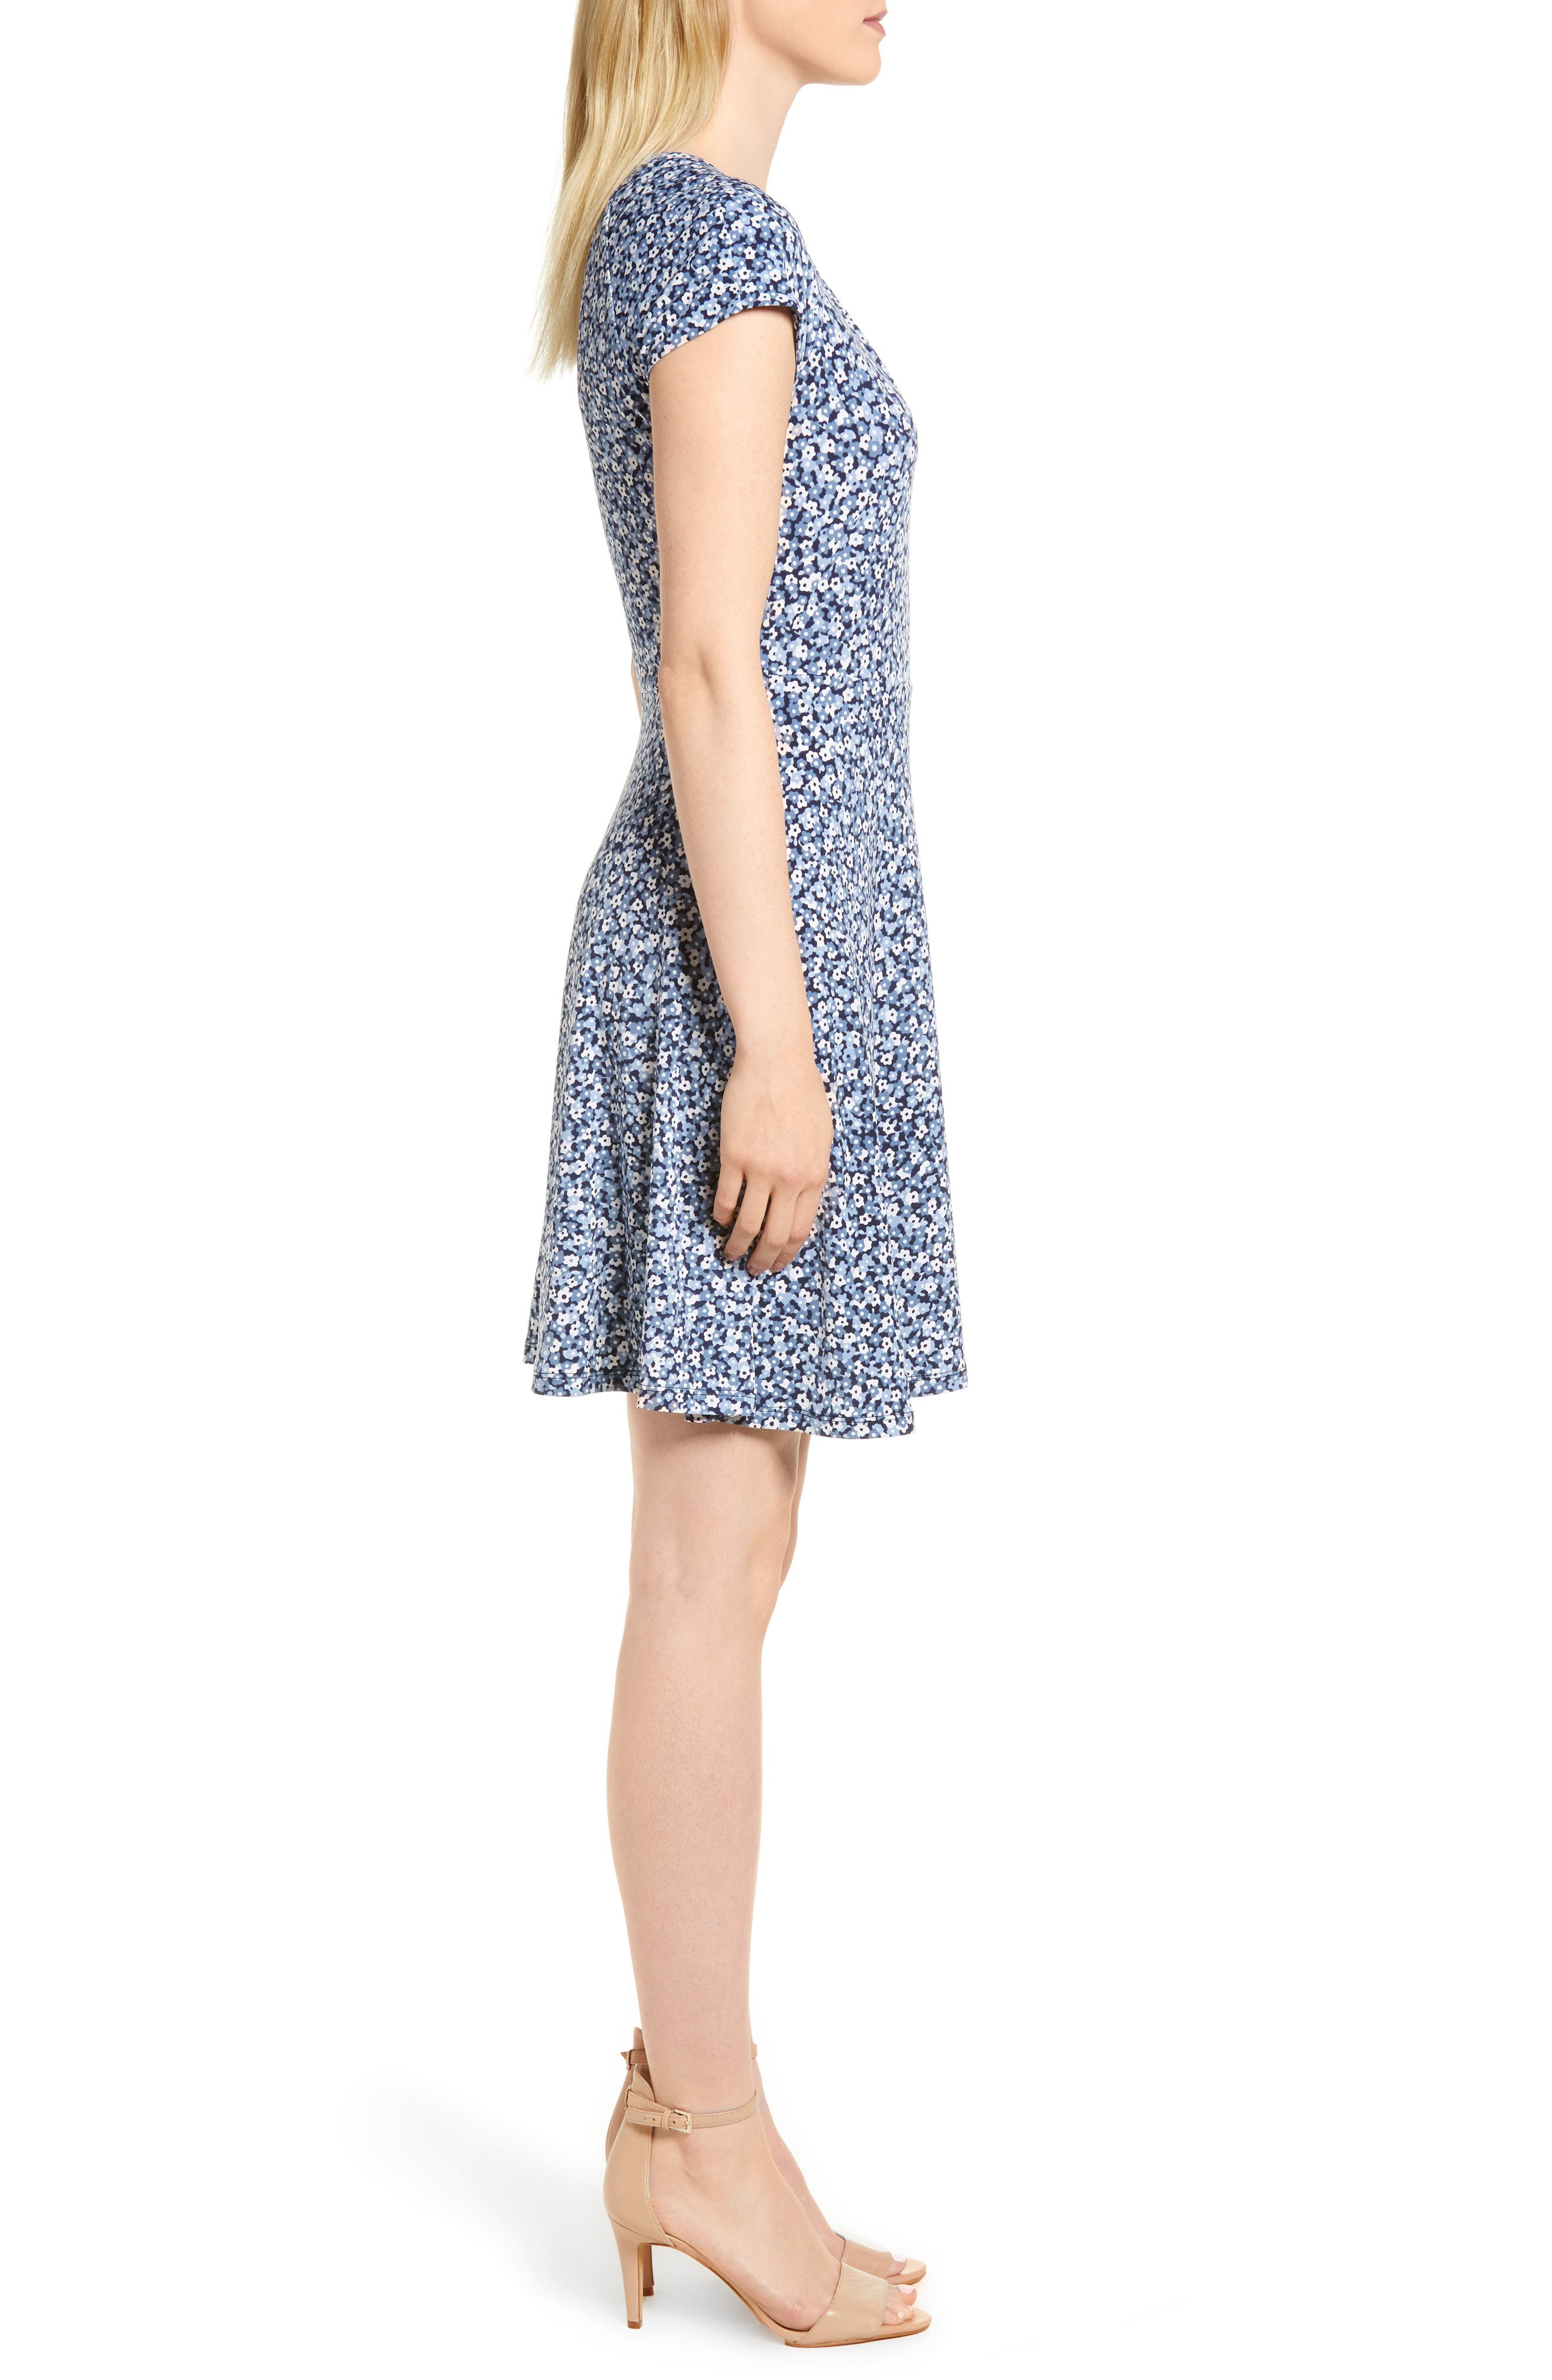 Collage Floral Double Keyhole Dress,                             Alternate thumbnail 3, color,                             True Navy/ Light Chambray